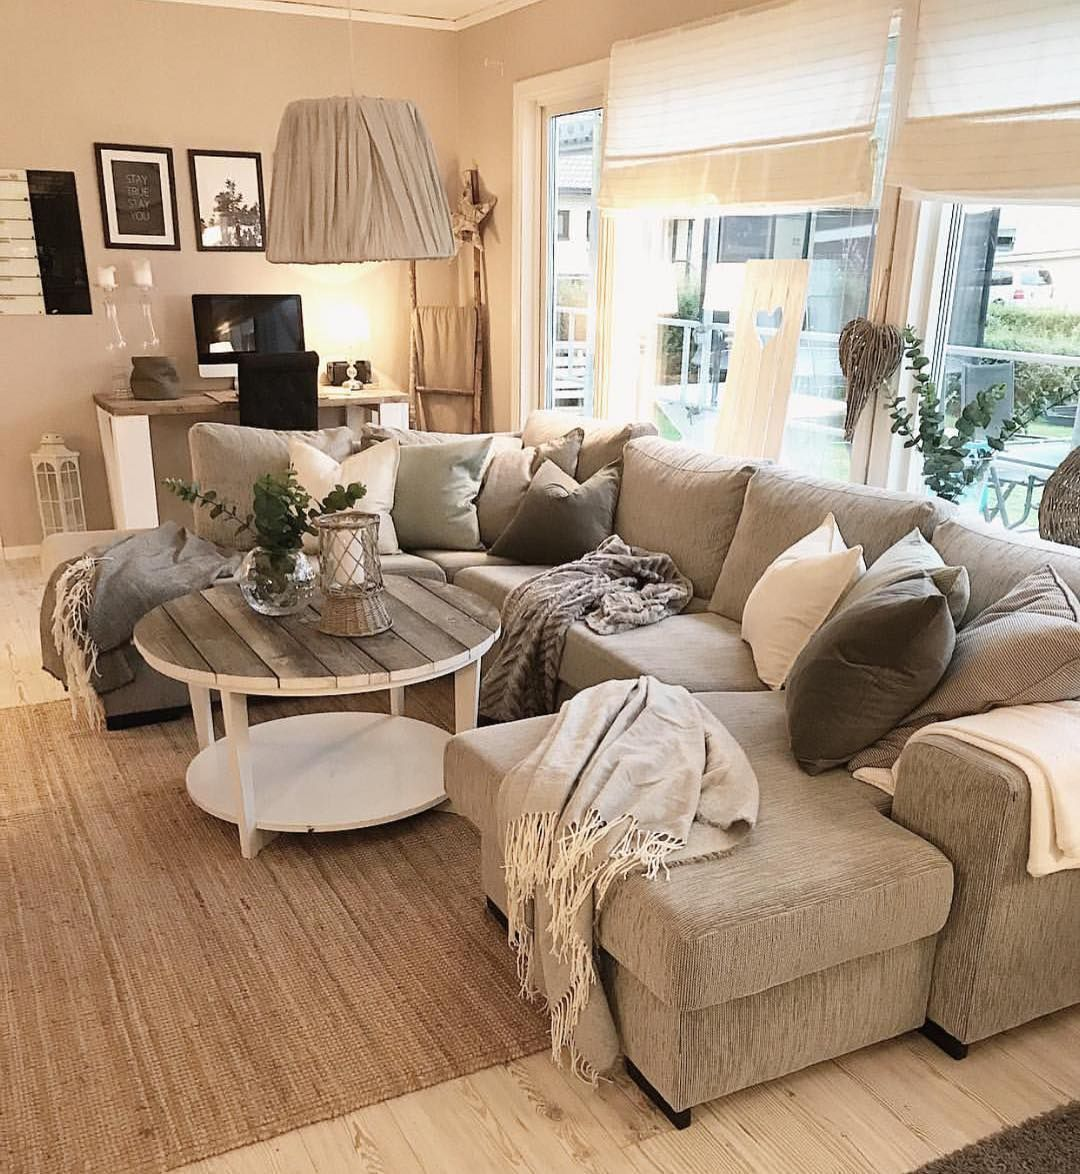 10 Comfortable And Cozy Living Rooms Ideas You Must Check Hoomble Cosy Living Room Farmhouse Decor Living Room Farm House Living Room